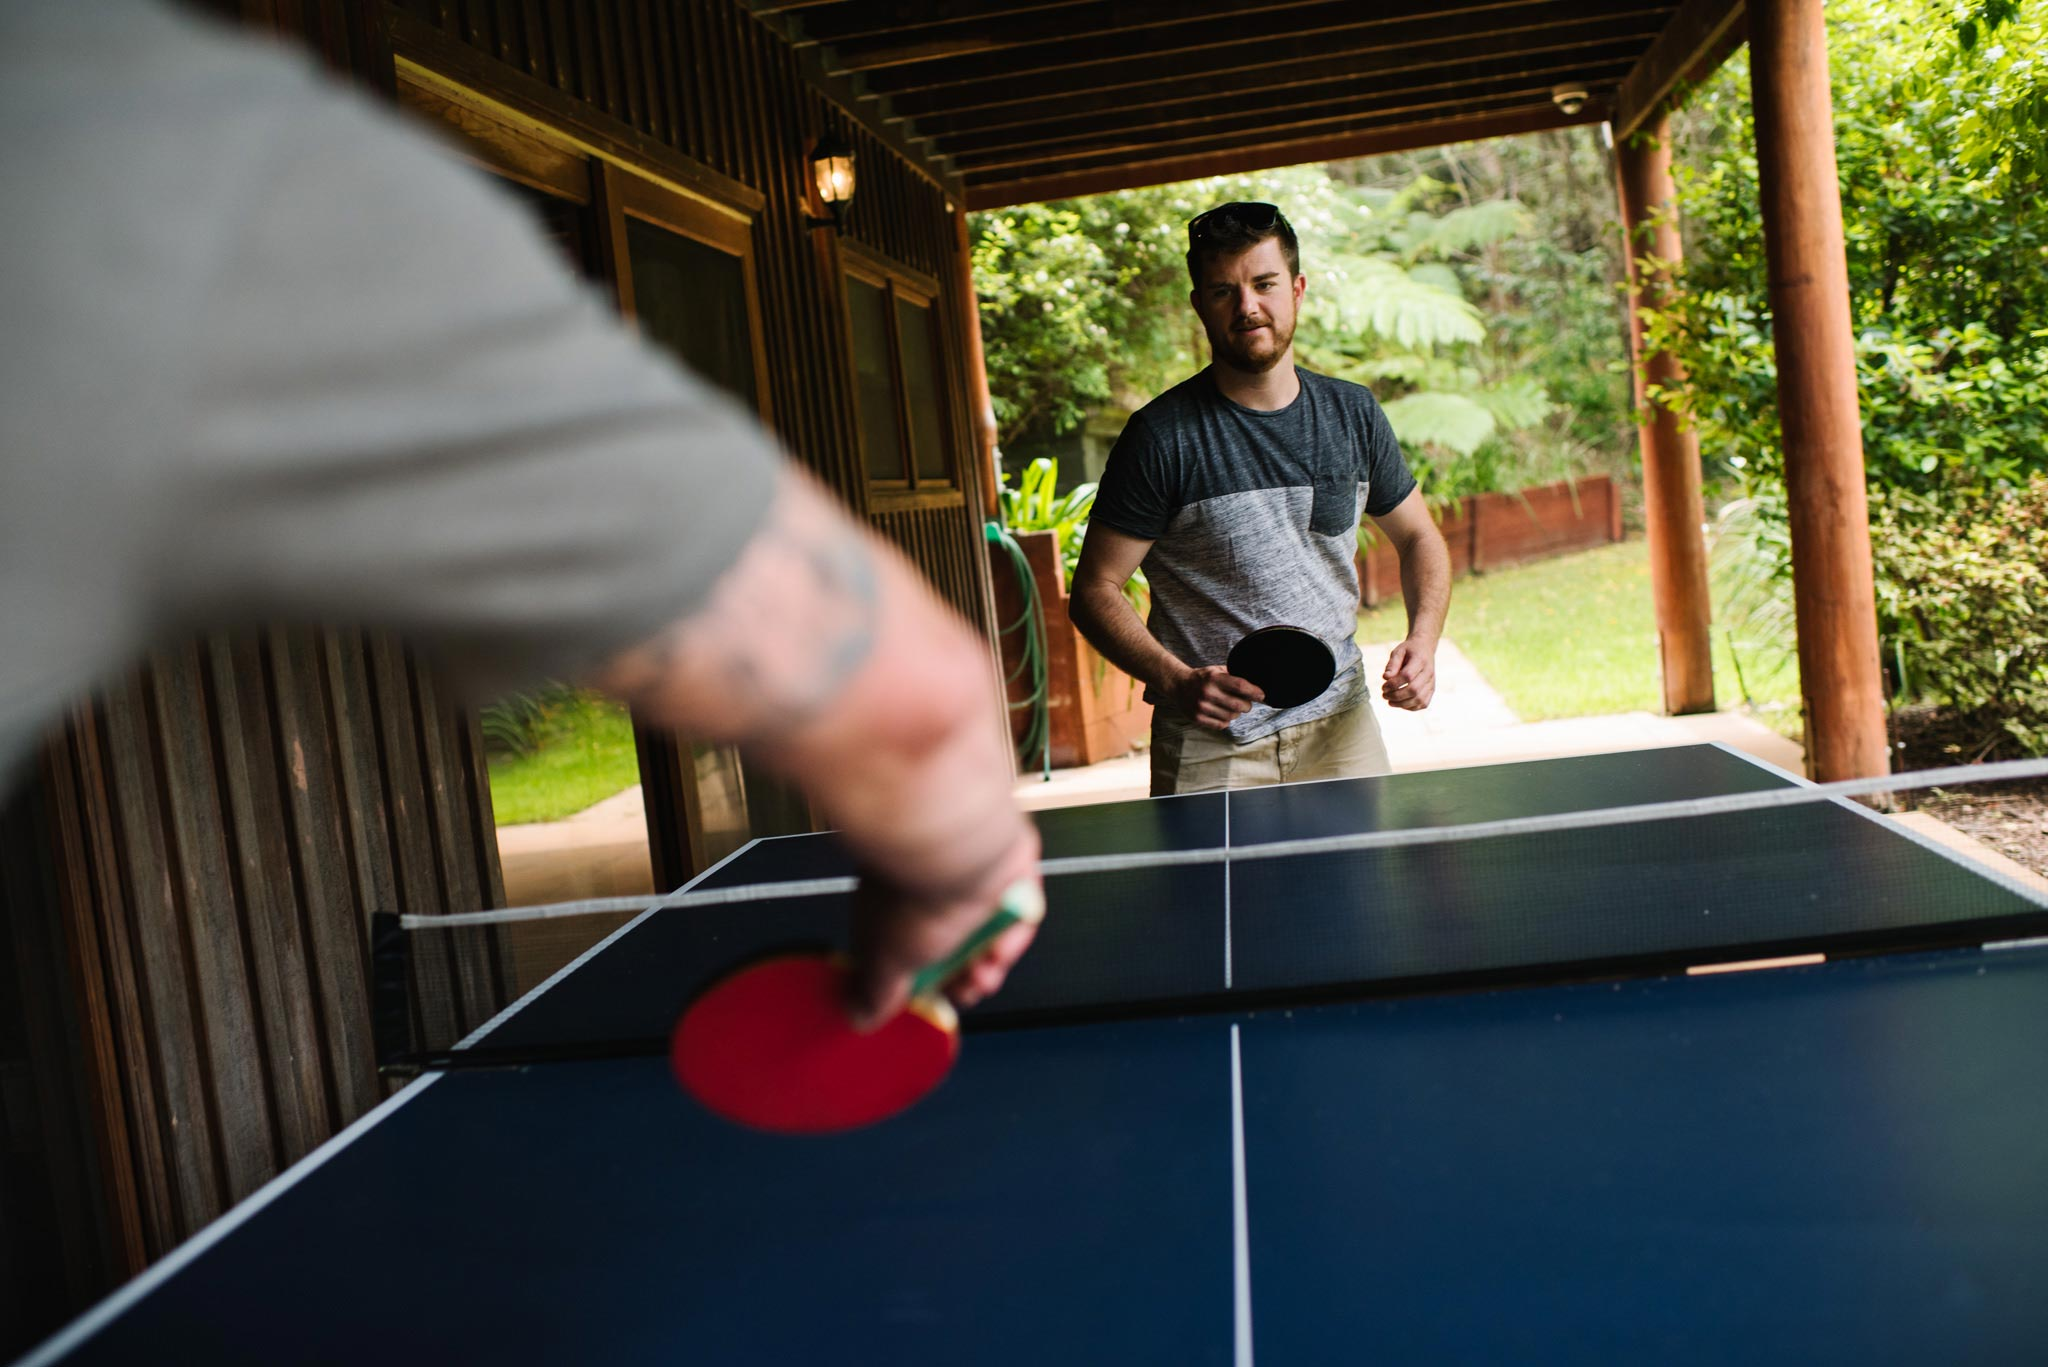 Groom playing table tennis before wedding